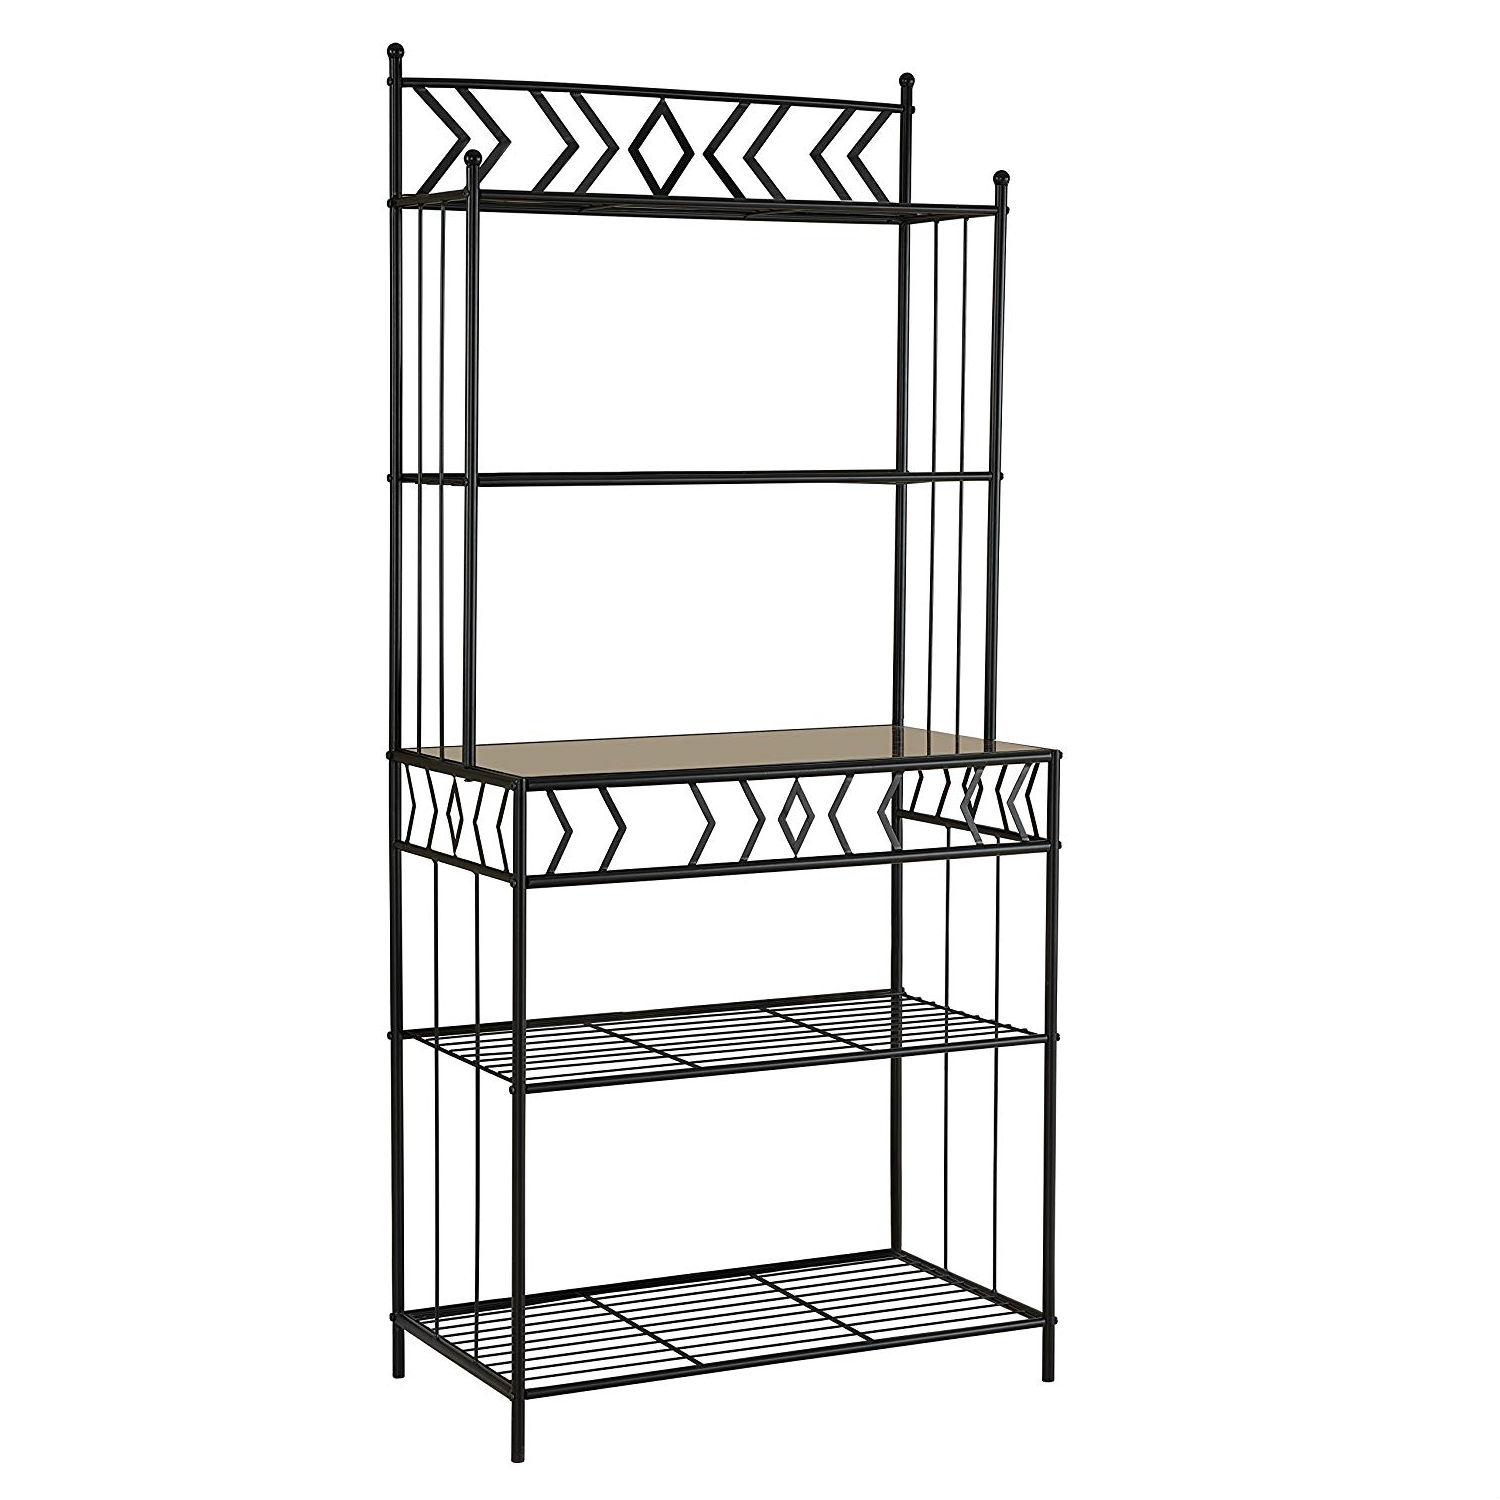 kitchen bakers rack with metal and glass shelves in black rh fastfurnishings com Glass and Metal Bakers Rack metal bakers rack with glass shelves